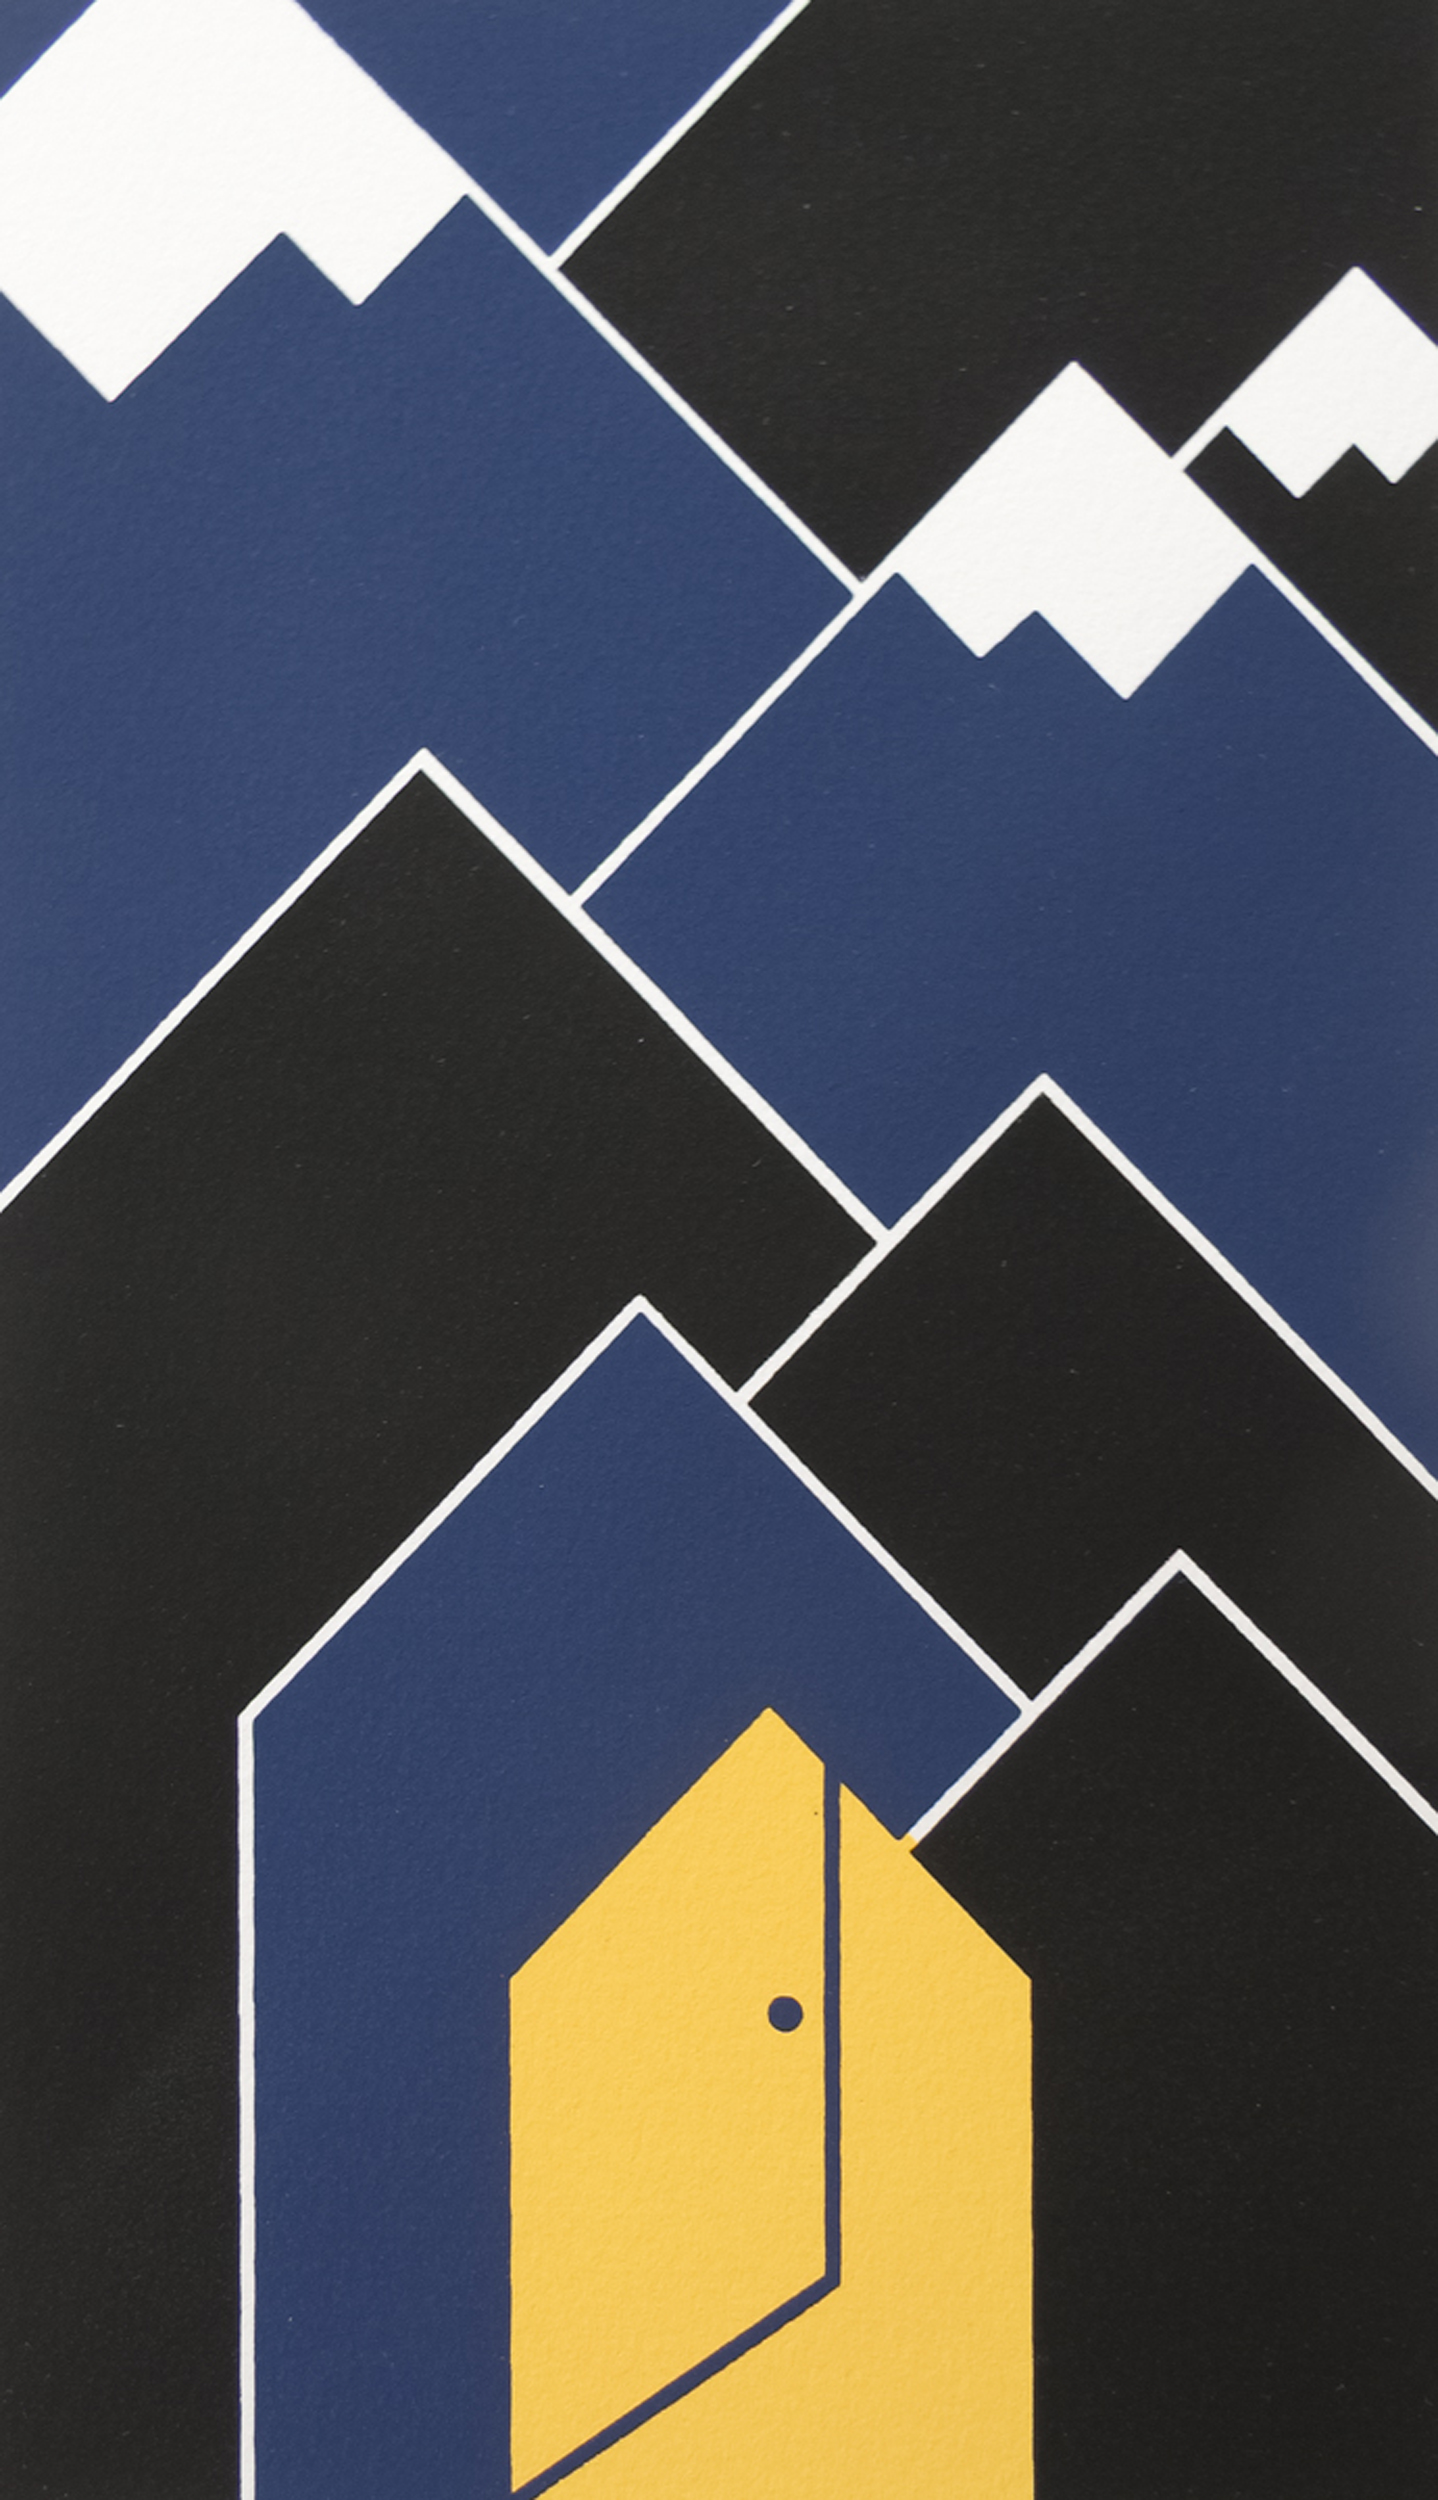 Nancy Bolan, Shortcut, screenprint